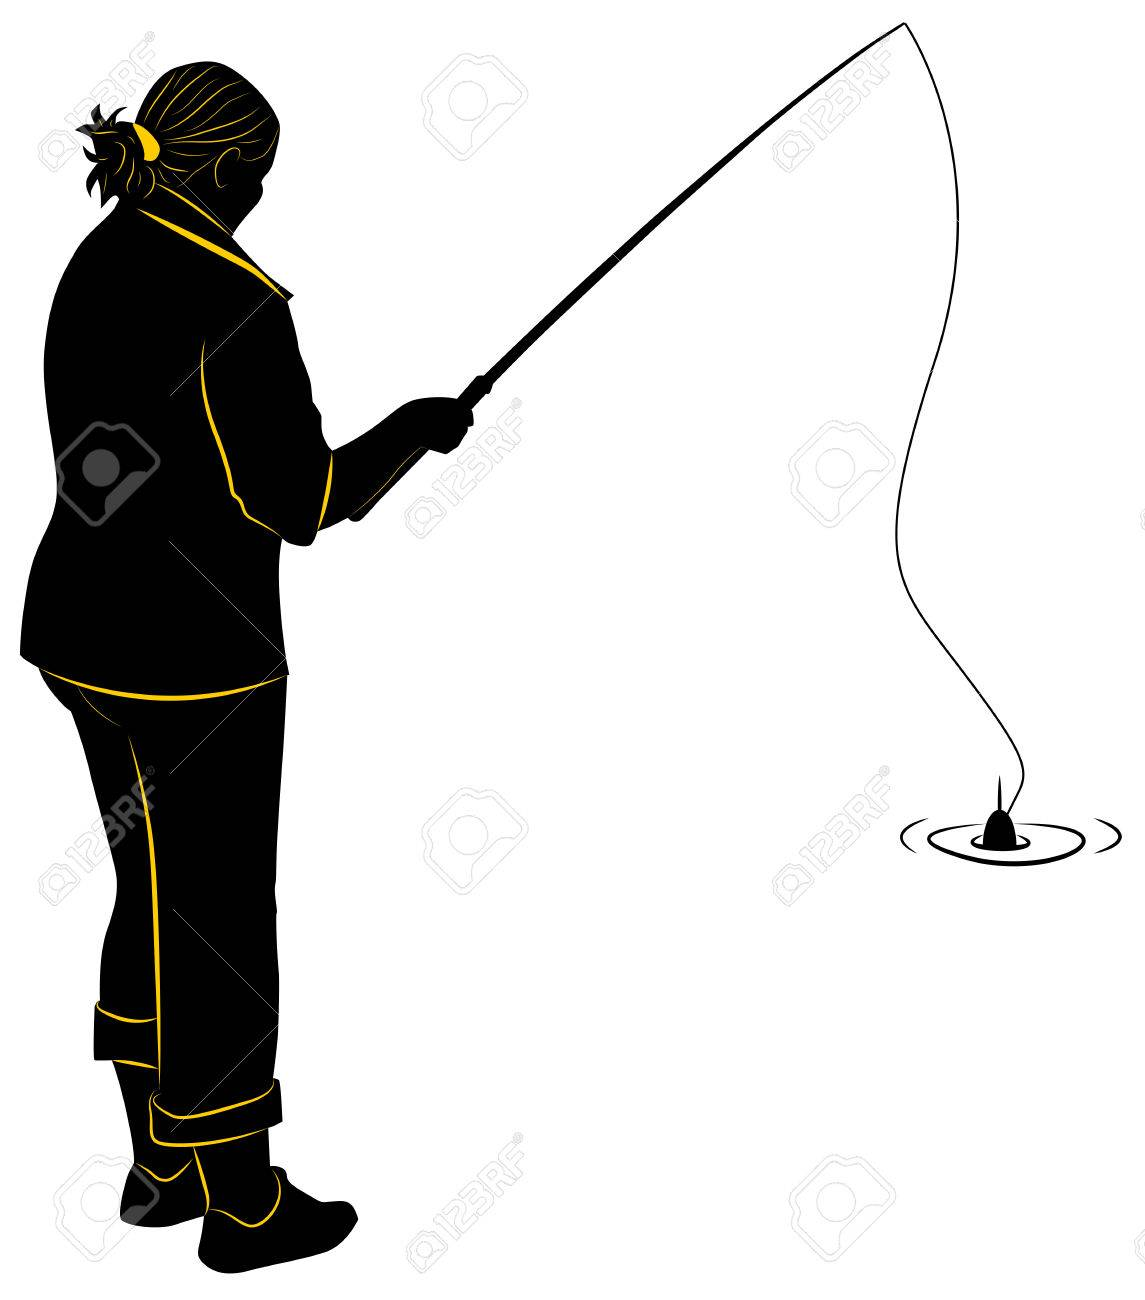 Silhouette Of The Girl With A Fishing Rod Royalty Free Cliparts Vectors And Stock Illustration Image 24687329